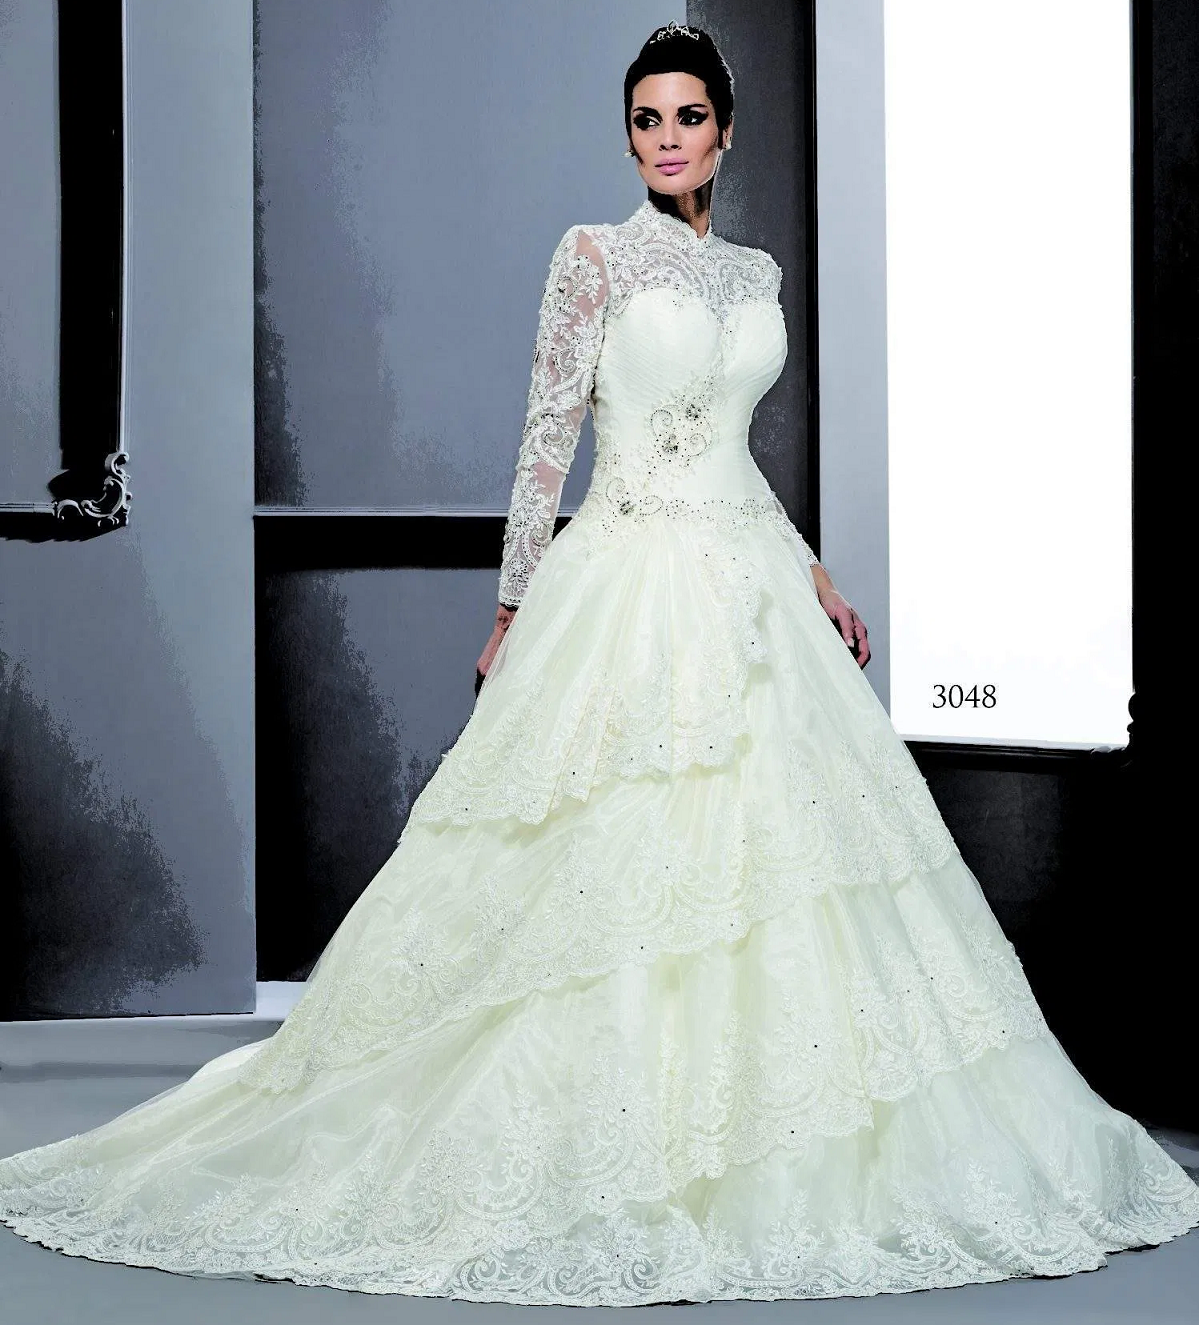 Wedding dress bling Long Sleeve Bridal Dresses in Lace Fabric Adorned with Crystals and Other beads On The Bodice